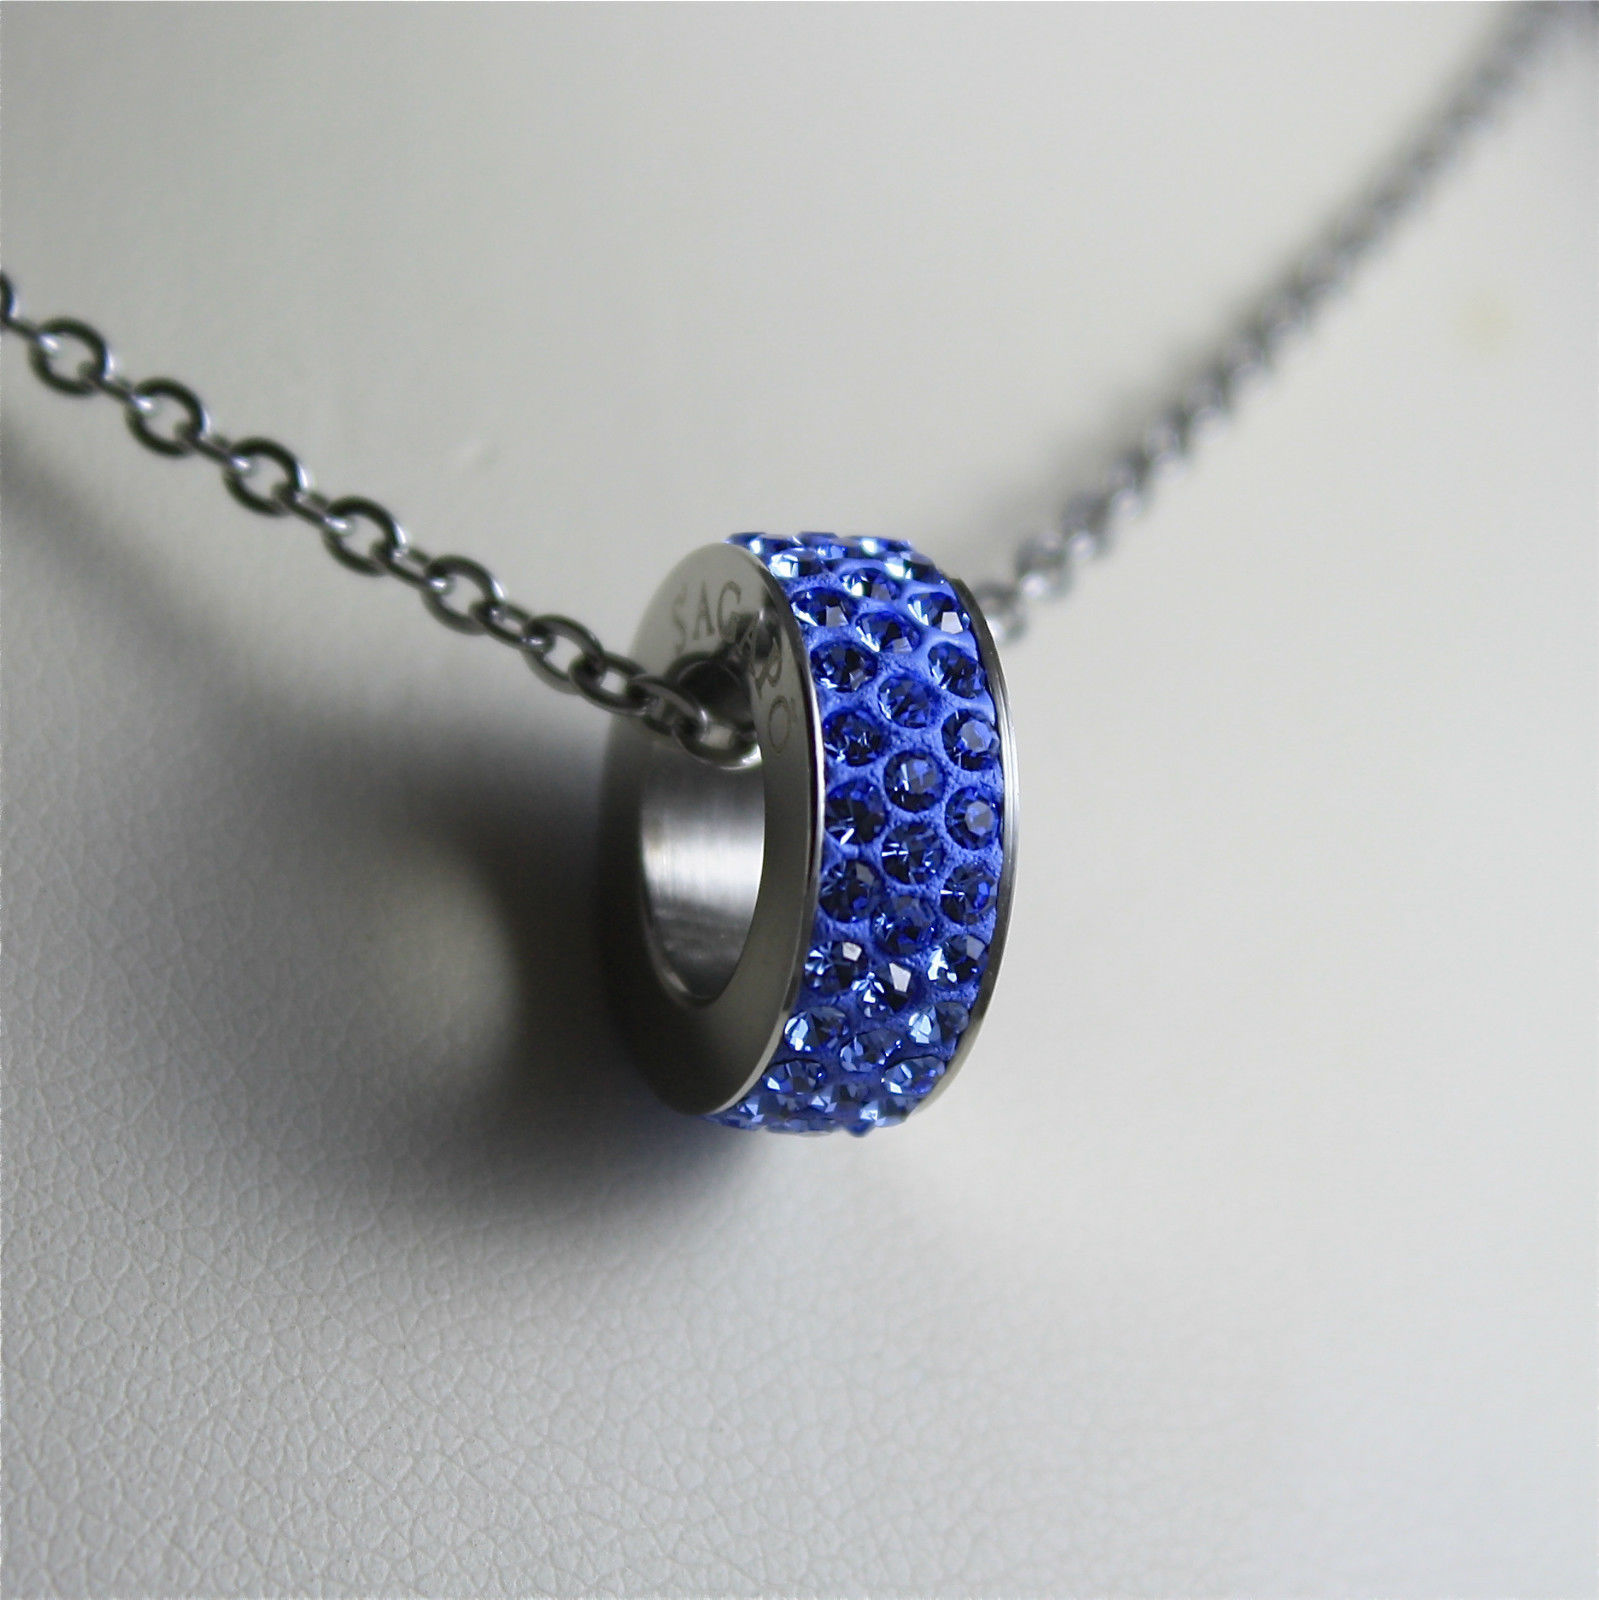 S'AGAPO' NECKLACE, 316L STEEL, BLUE PENDANT WITH FACETED CRYSTALS.